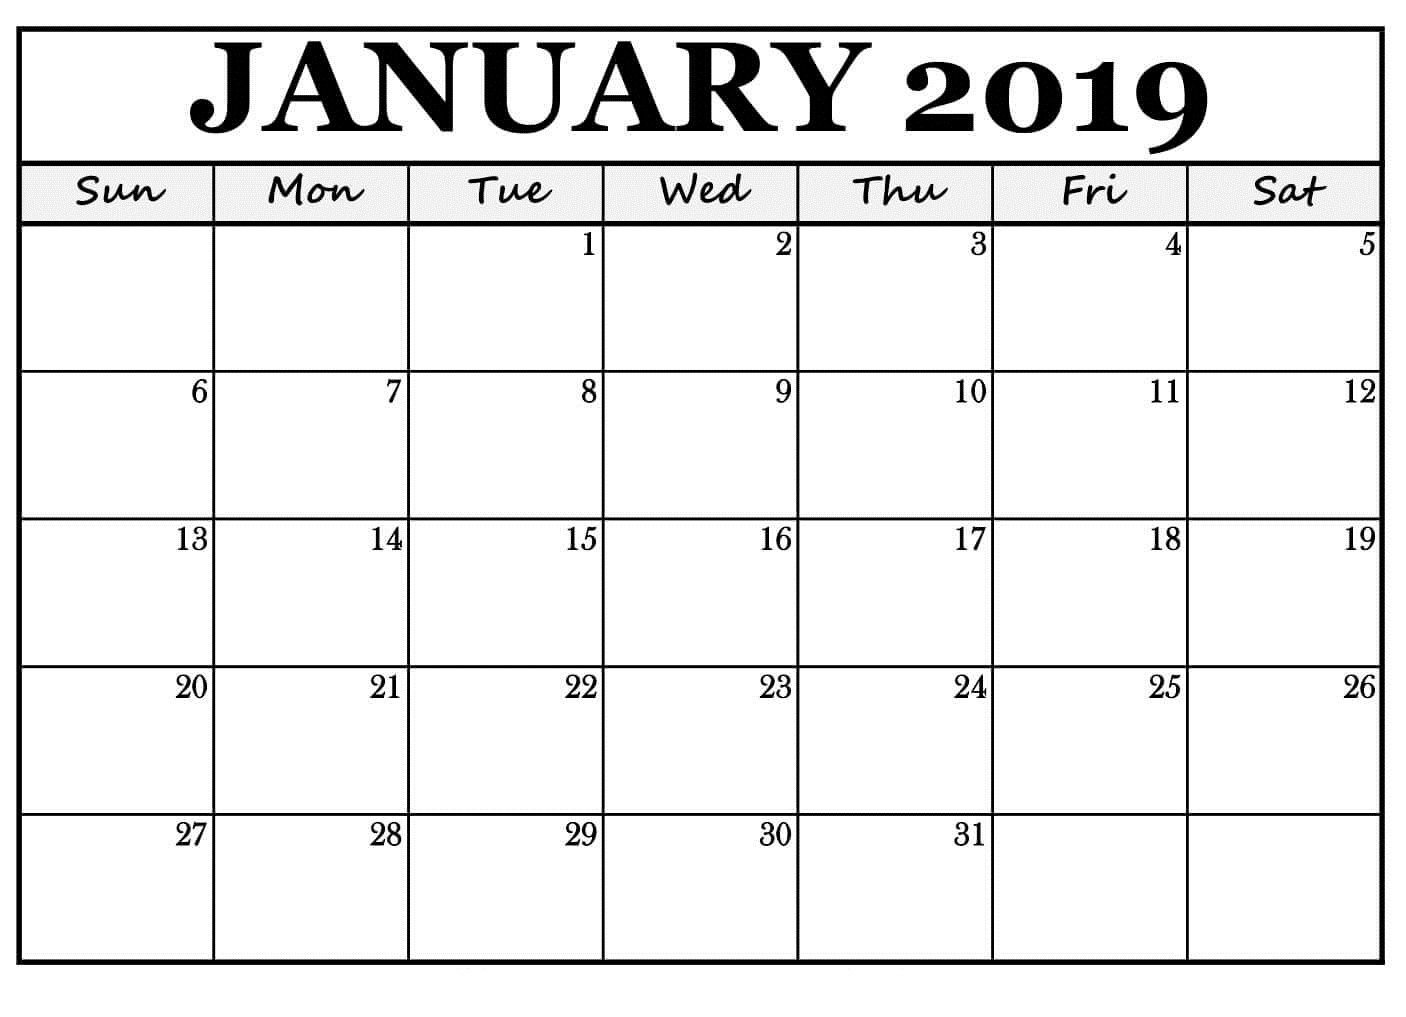 January 2019 Calendar Reminders Free Template | January 2019 Calendar 2019 January Pdf